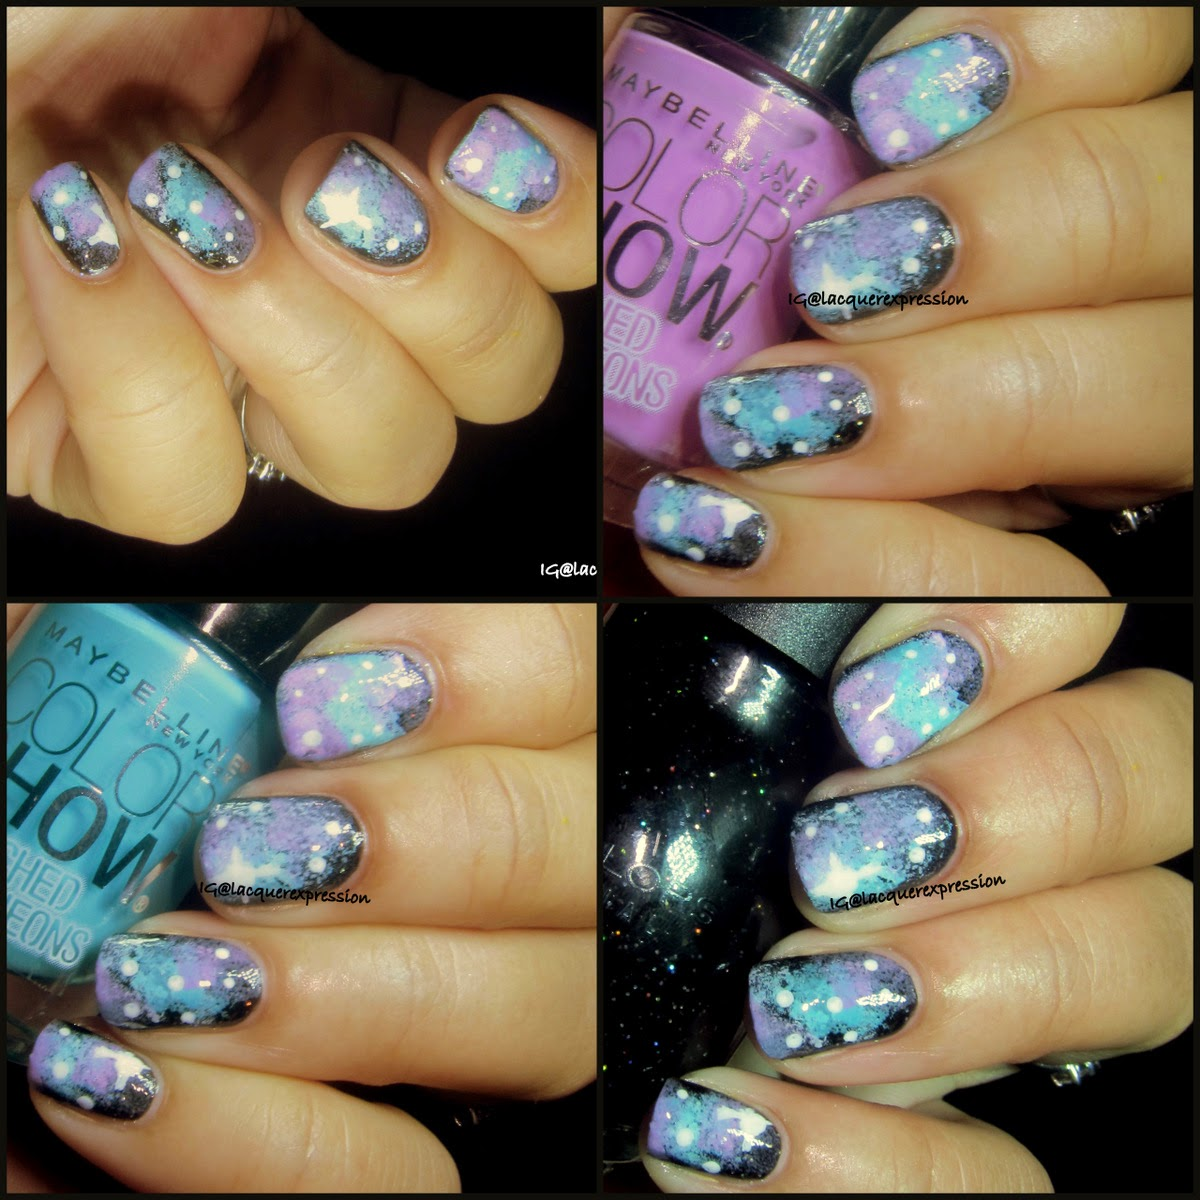 Nail Art - Galaxy Manicure - LacquerExpression